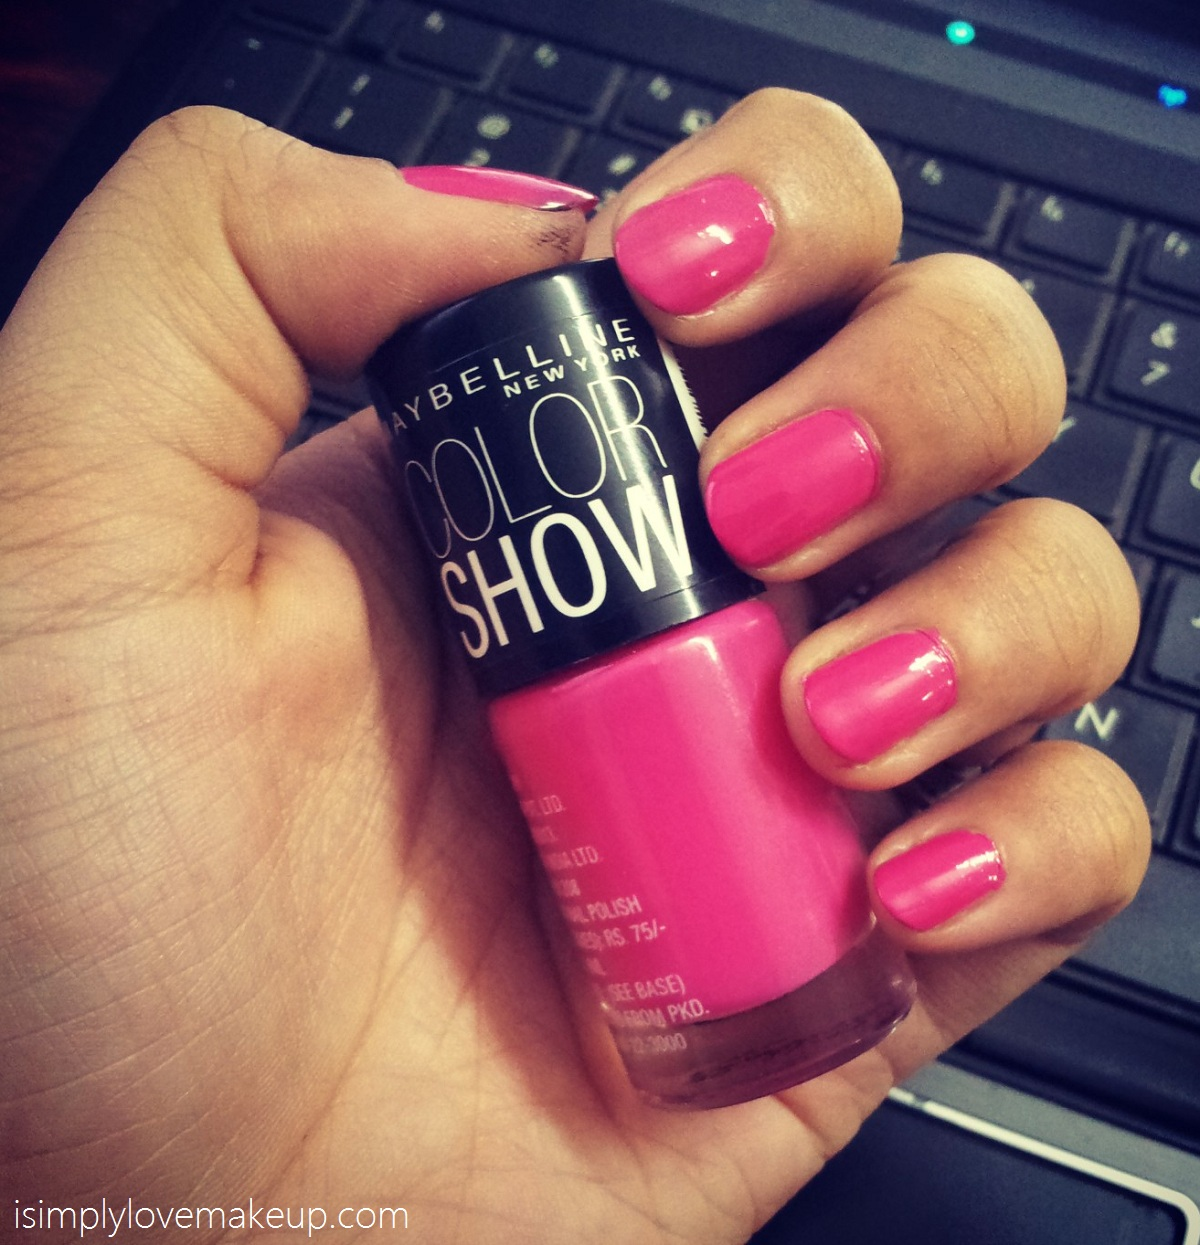 Maybelline Colorshow Nail Polish in Fiesty Fuschia